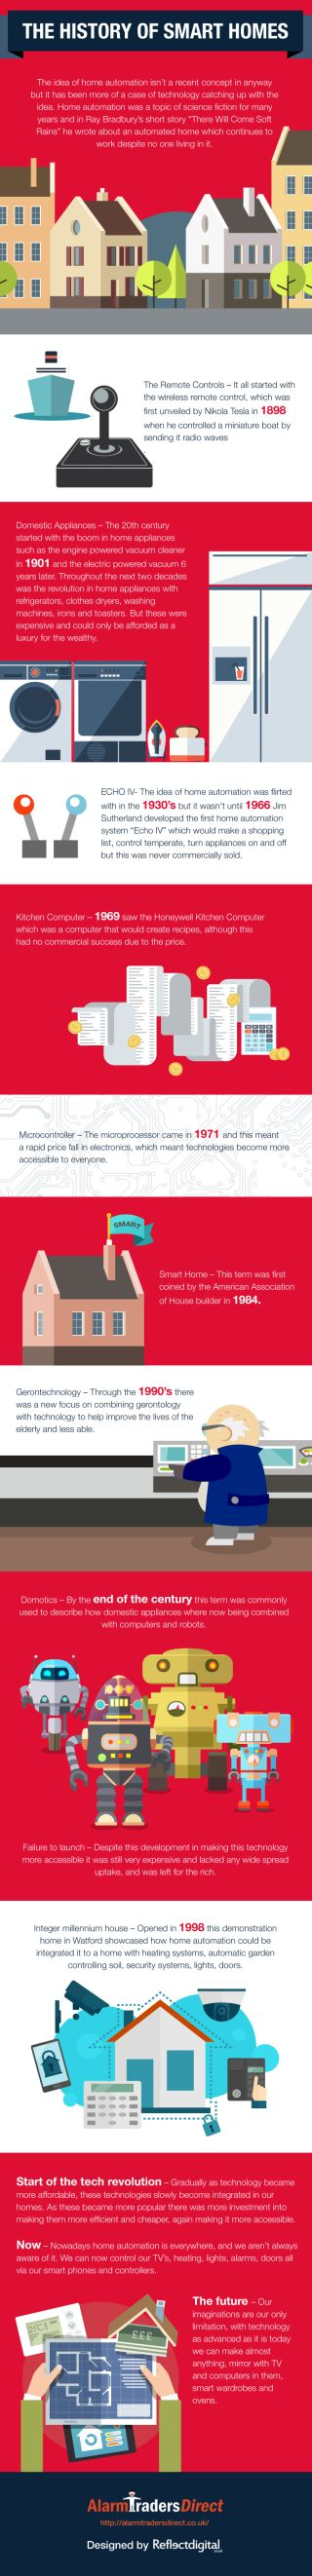 The history of the smart home [Infographic]